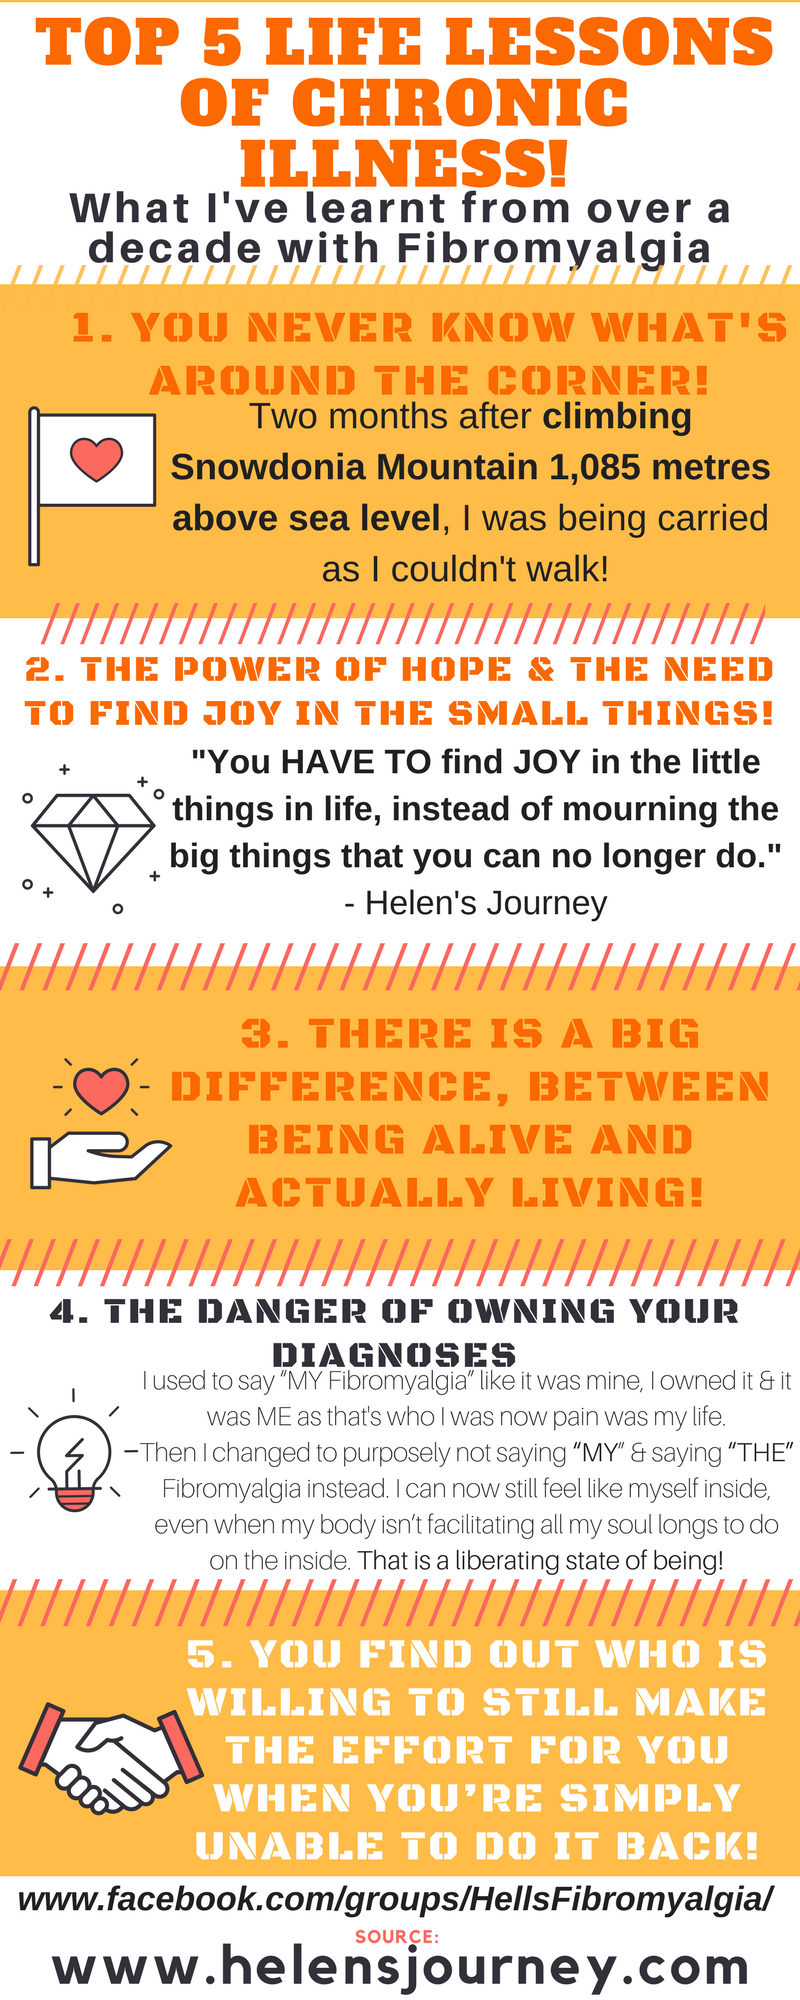 5 life lessons of chronic illness and what over a decade of Fibromyalgia has taught me! infographic by Helen's Journey blog www.helensjourney.com and weblink to Helen's Fibromyalgia Awareness Group on Facebook